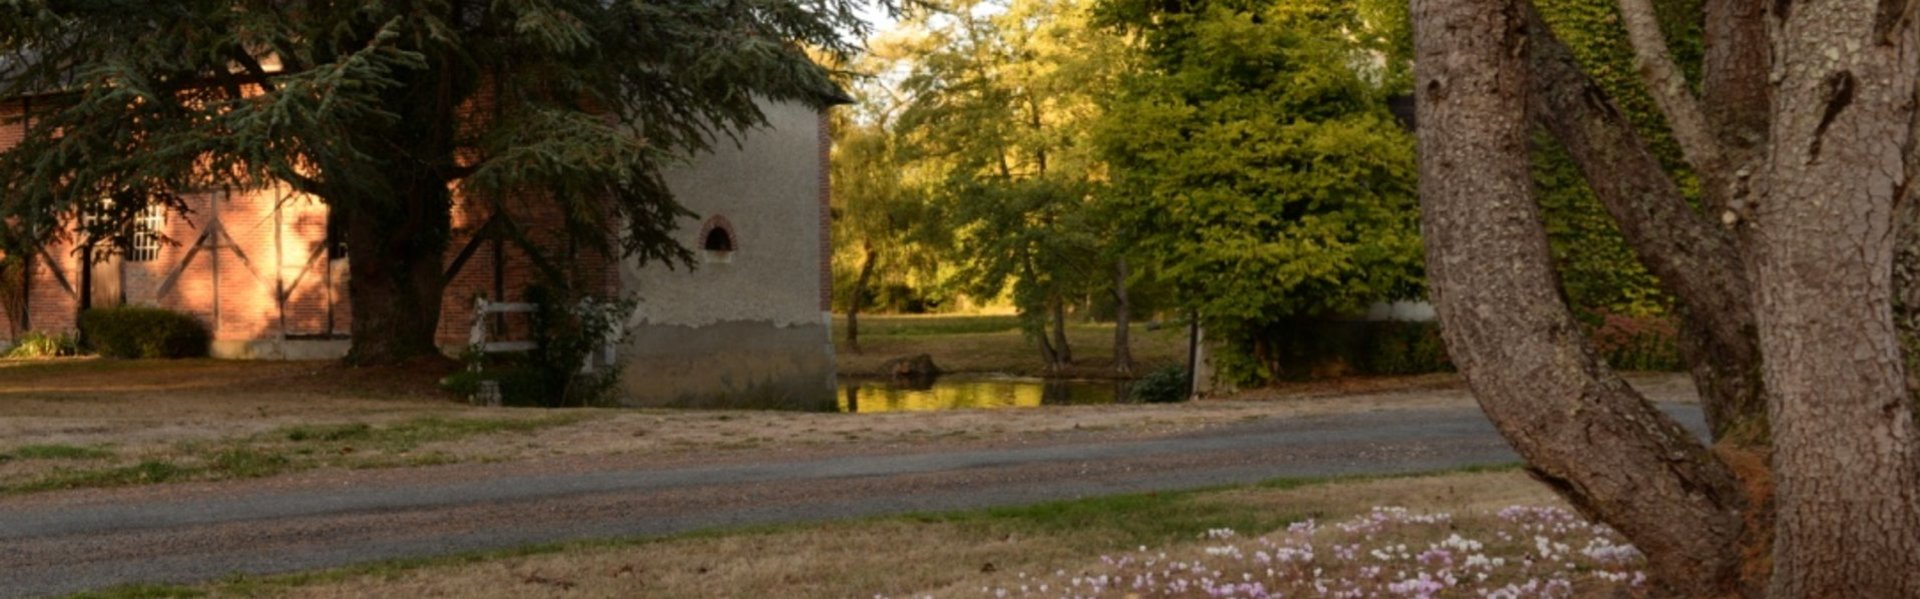 Mairie Commune Concressault Pays Fort Cher